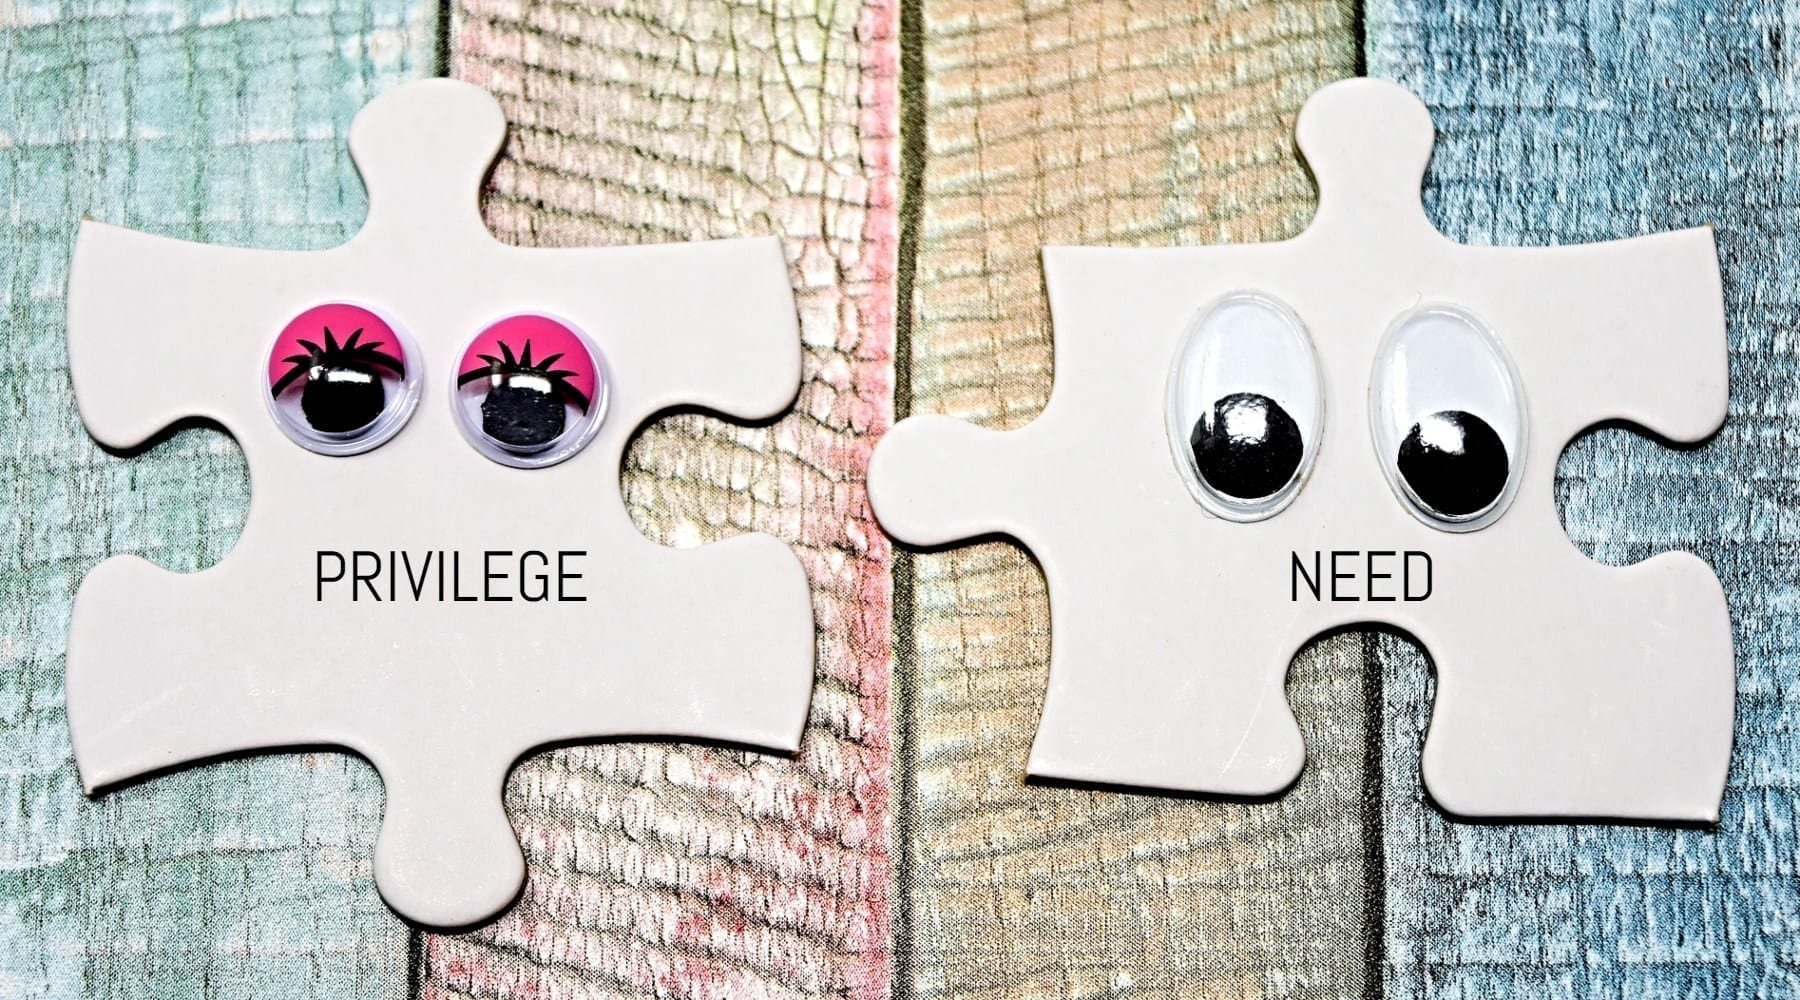 Will Need and Privilege Come Together for Common Good?